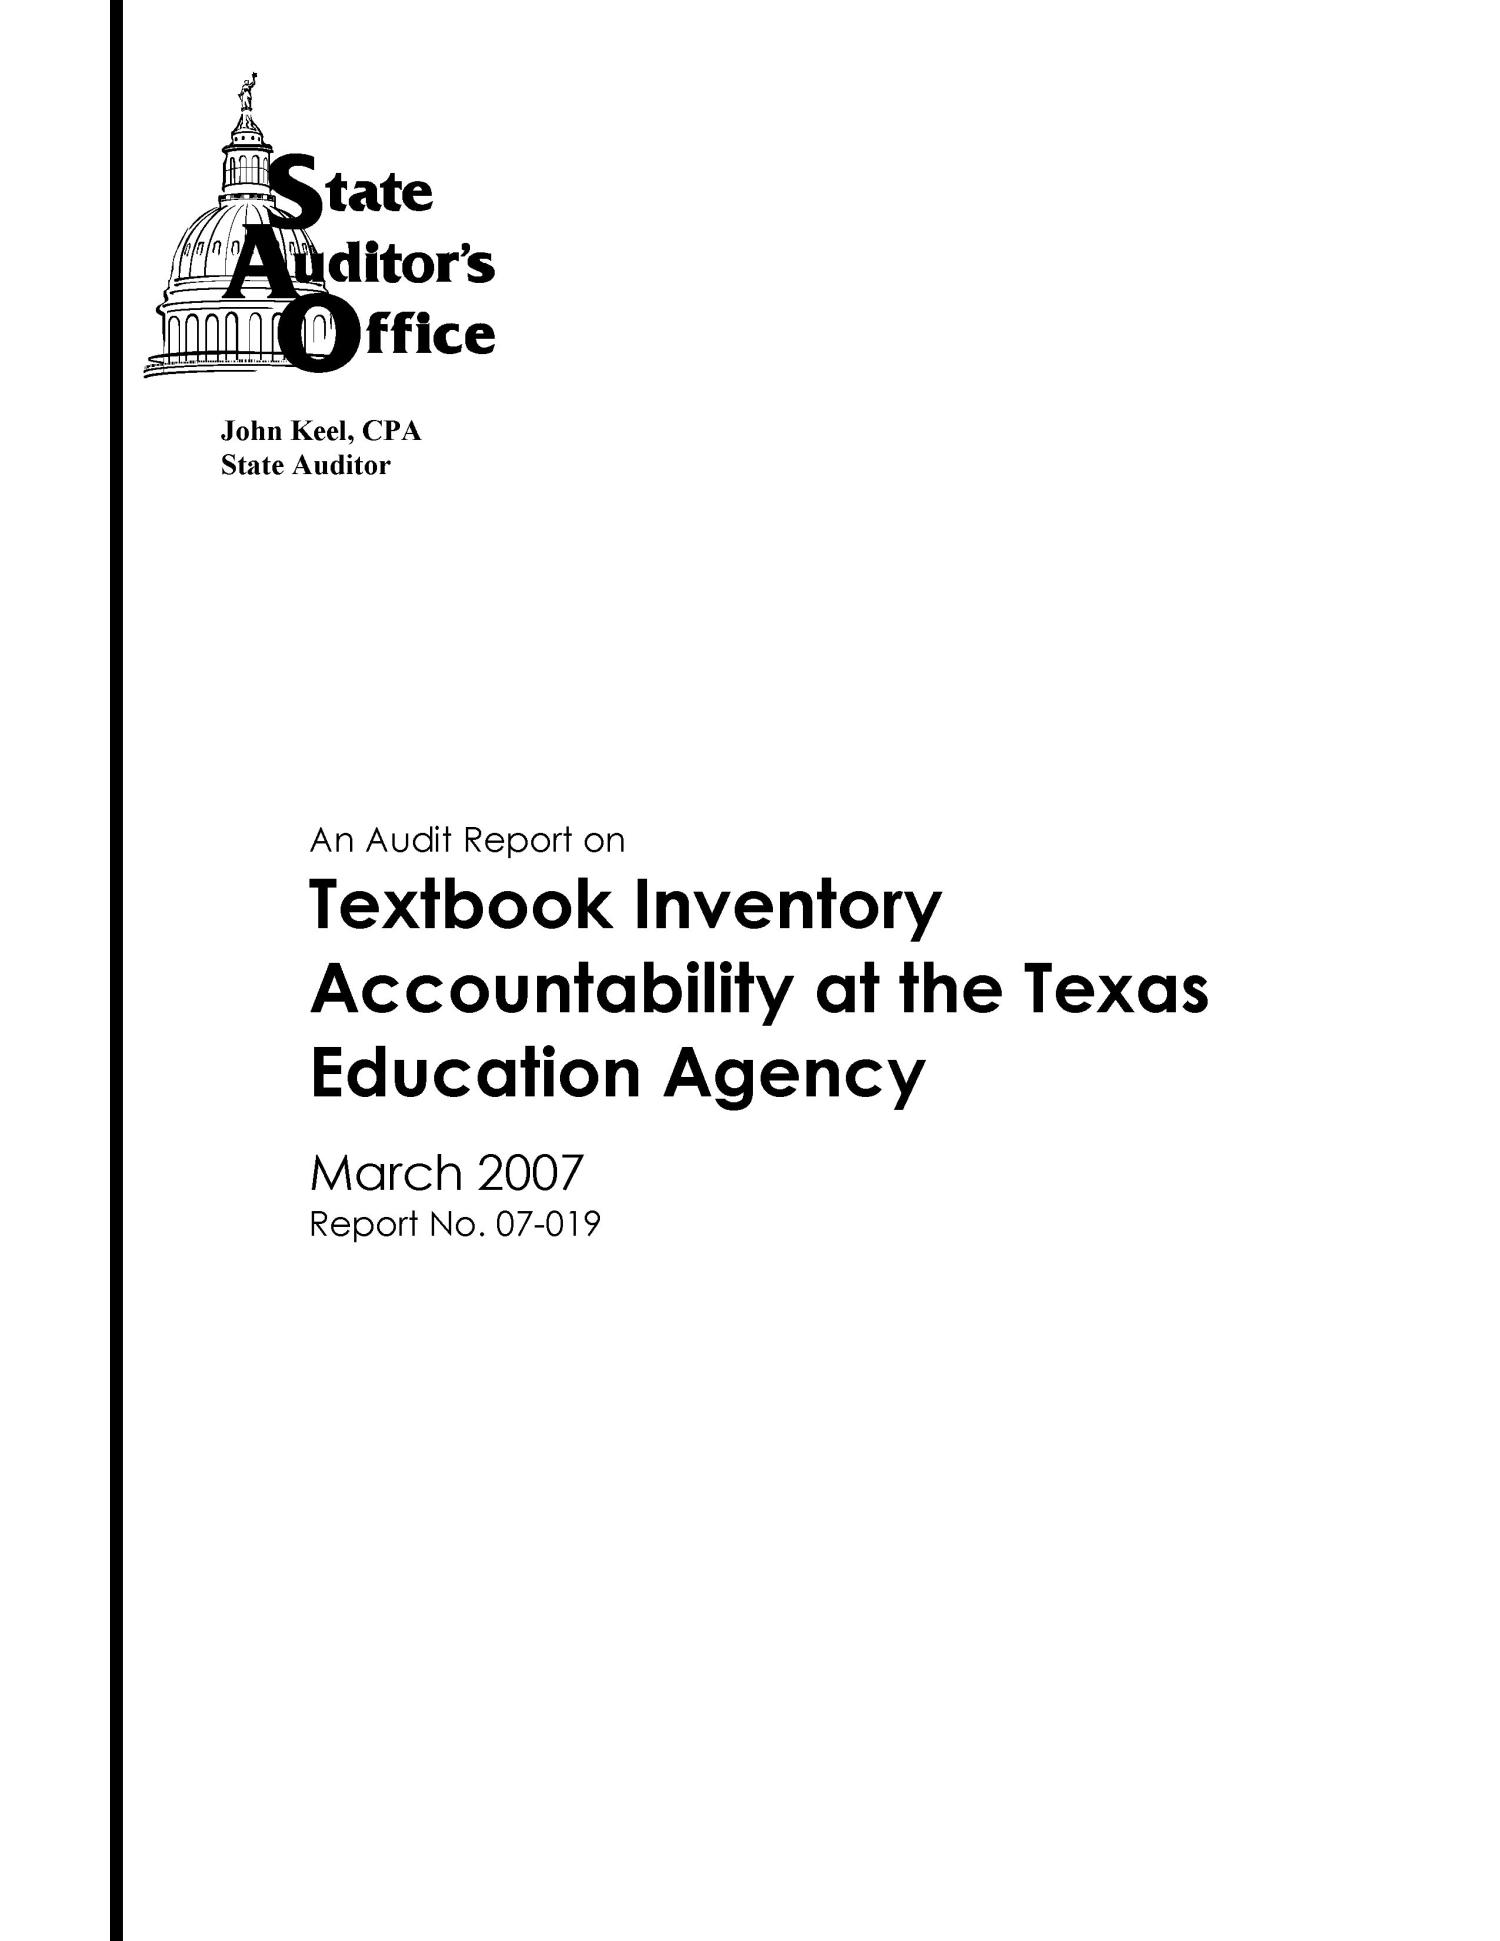 An Audit Report on Textbook Inventory Accountability at the